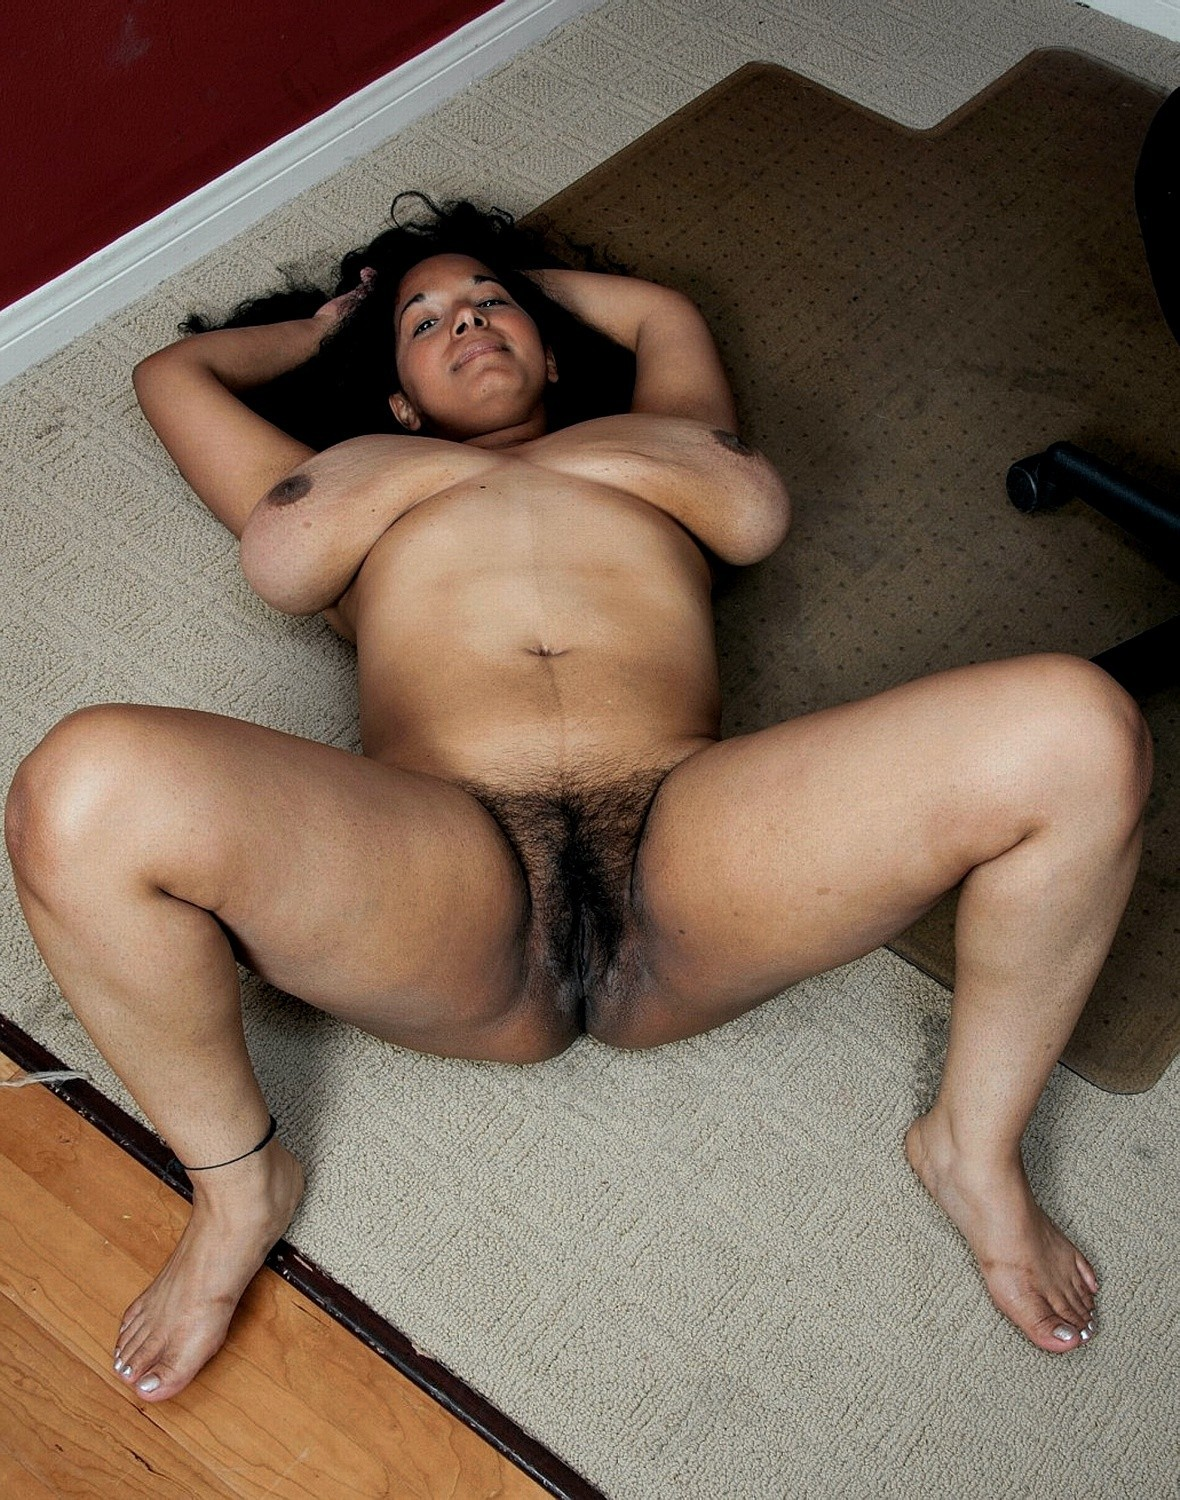 Consider, that ebony black hairy pussy excited